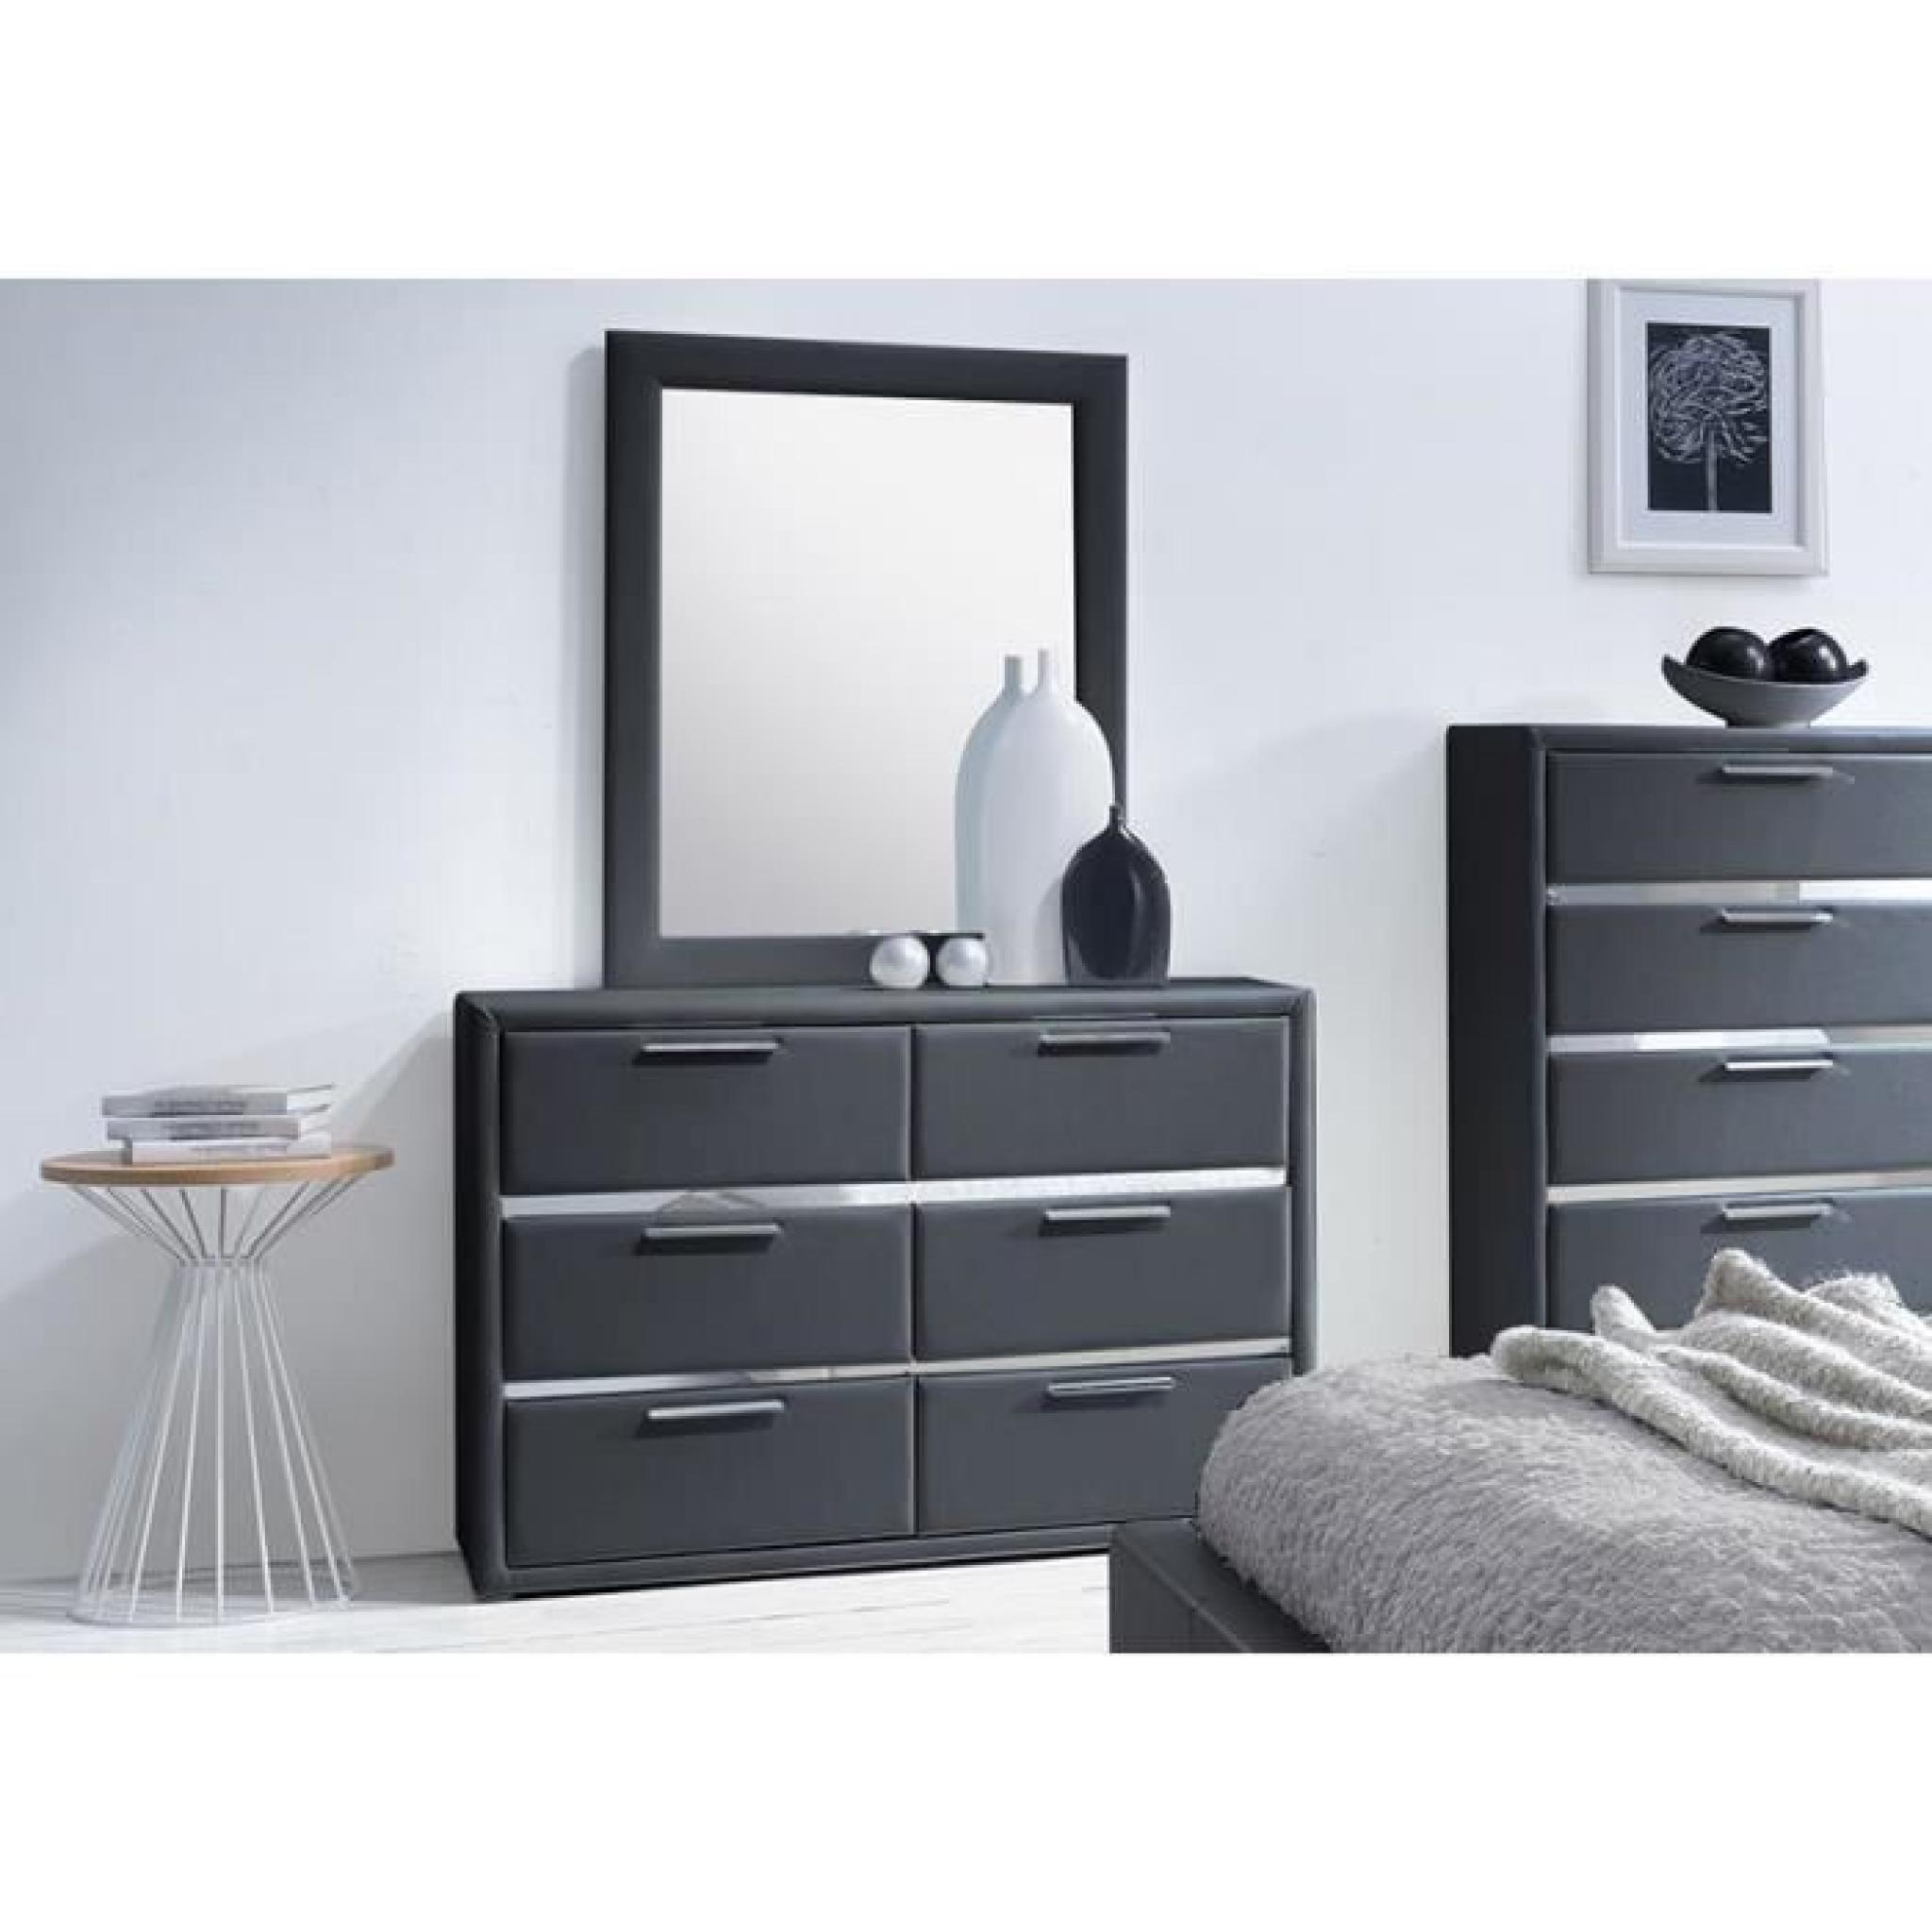 commode simili noir 6 tiroirs avec miroir exia achat. Black Bedroom Furniture Sets. Home Design Ideas